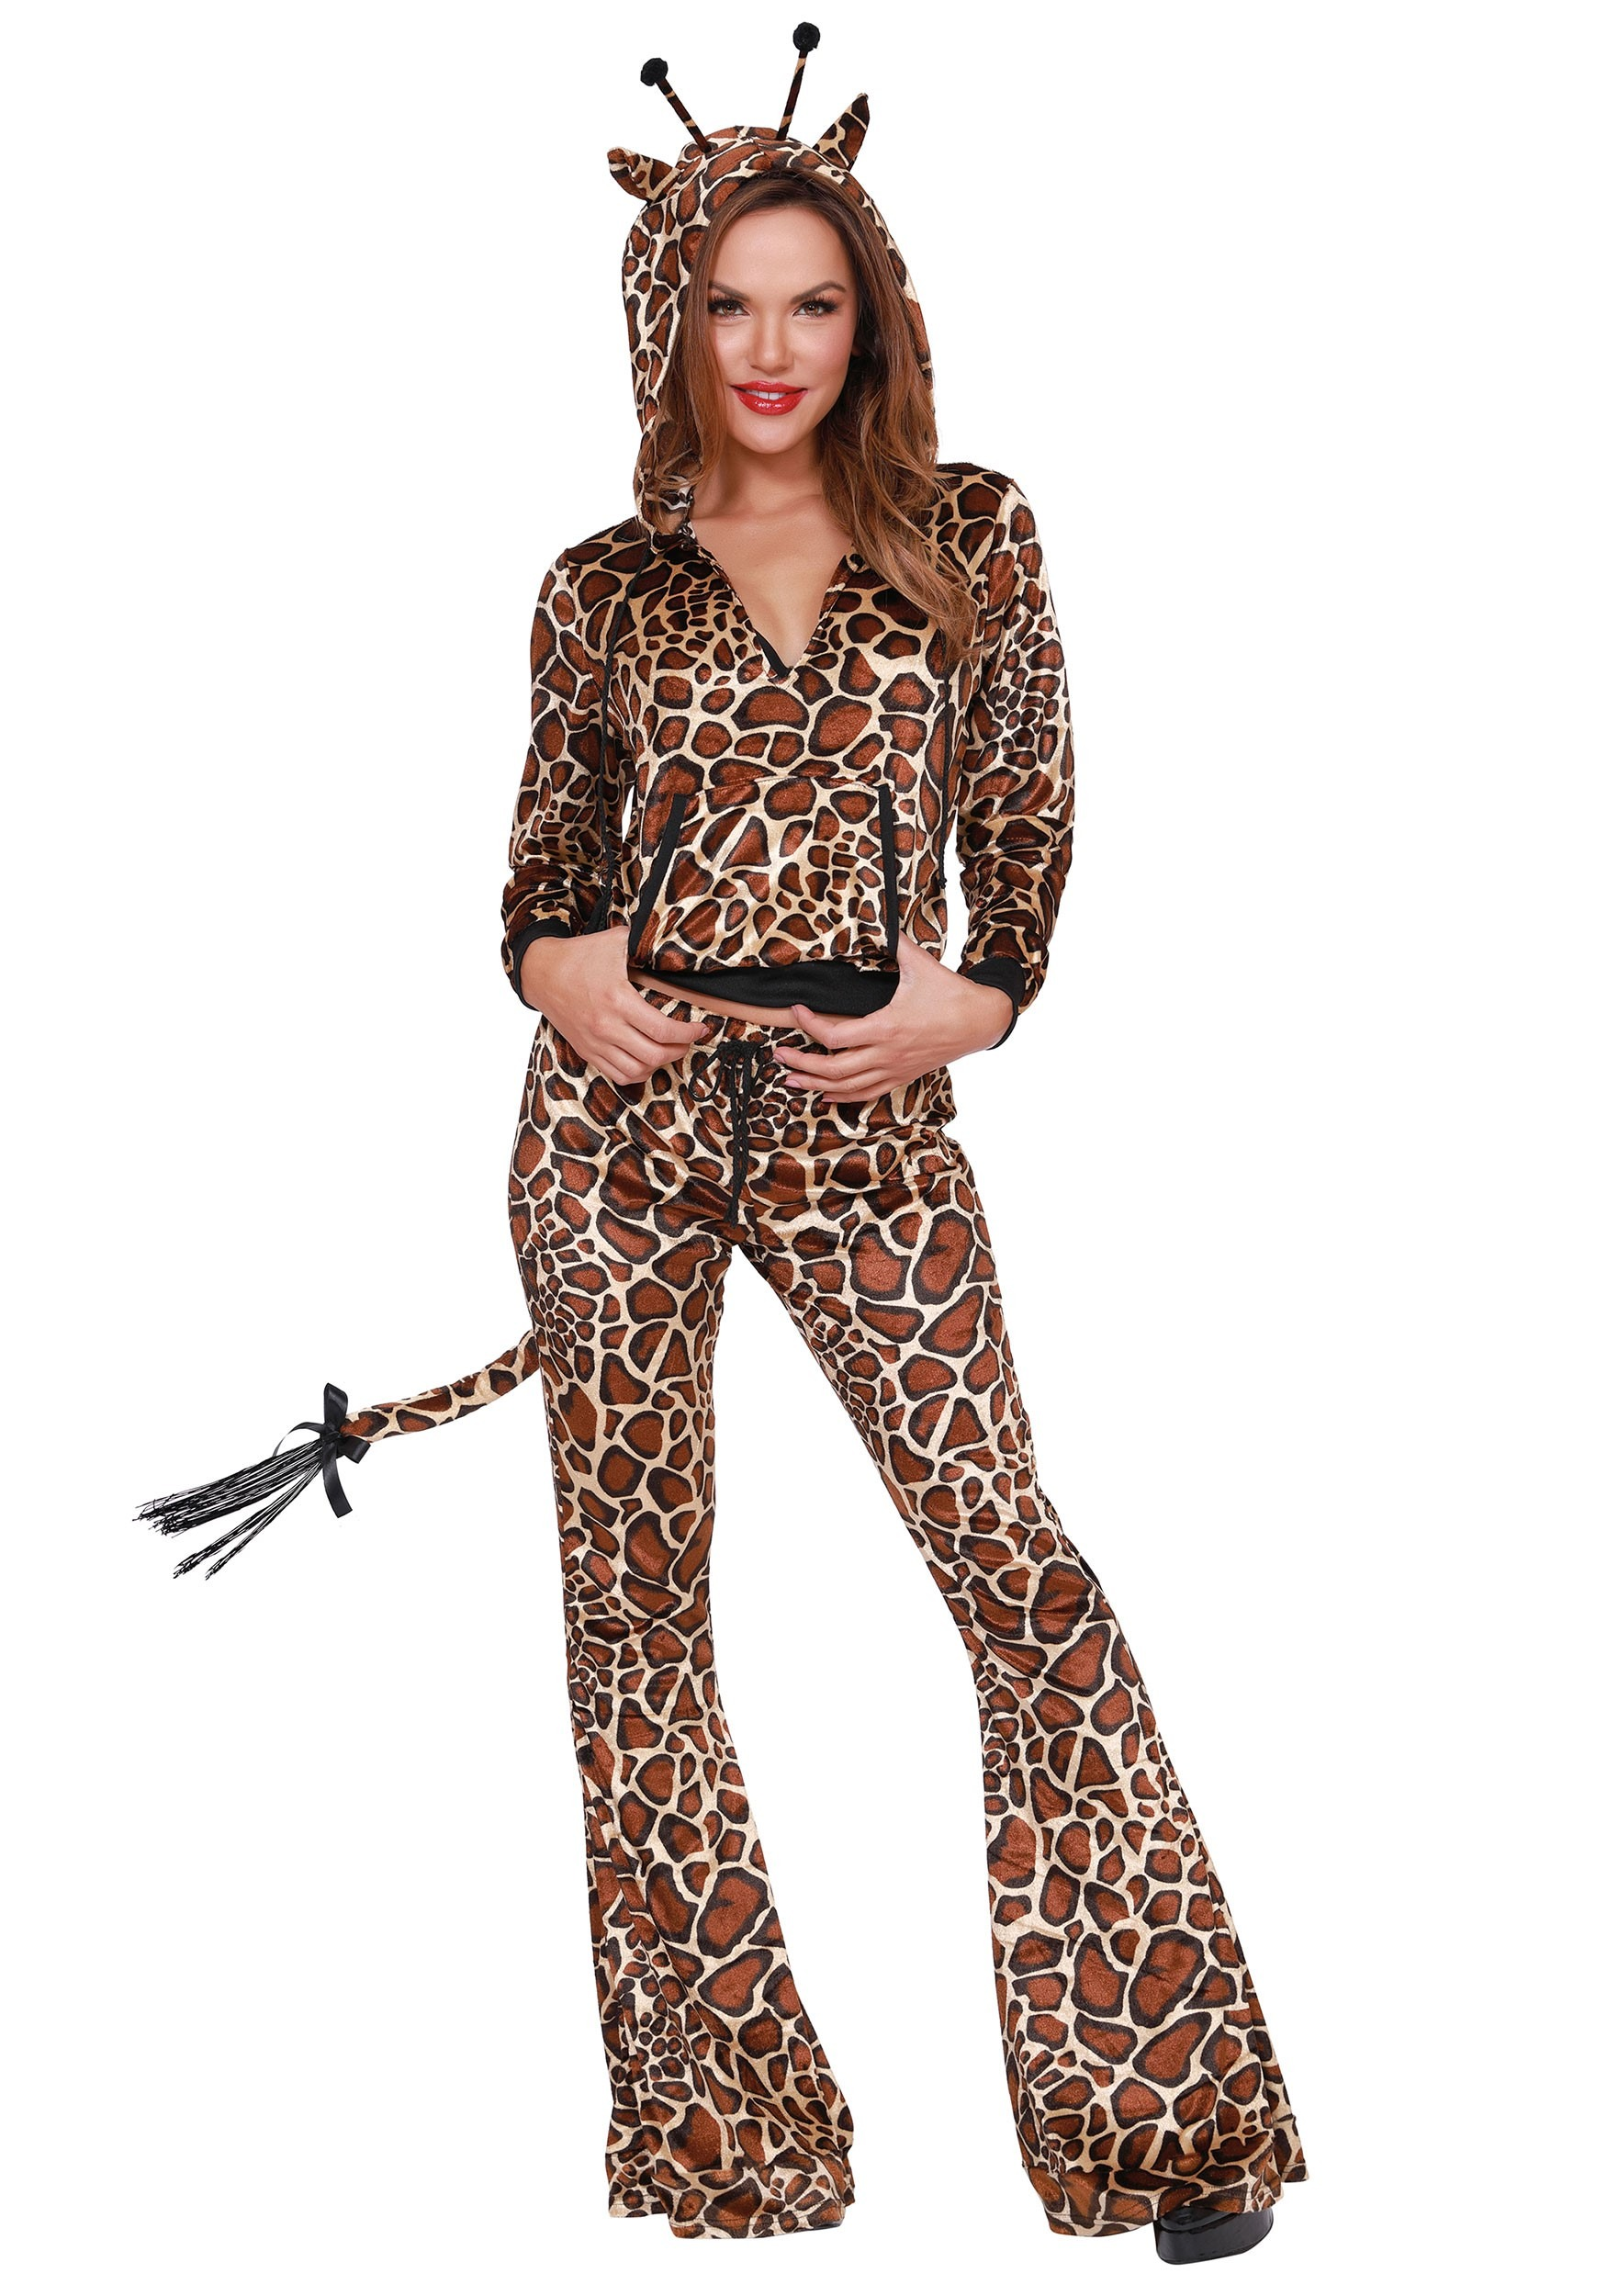 Women's Giraffe Costume